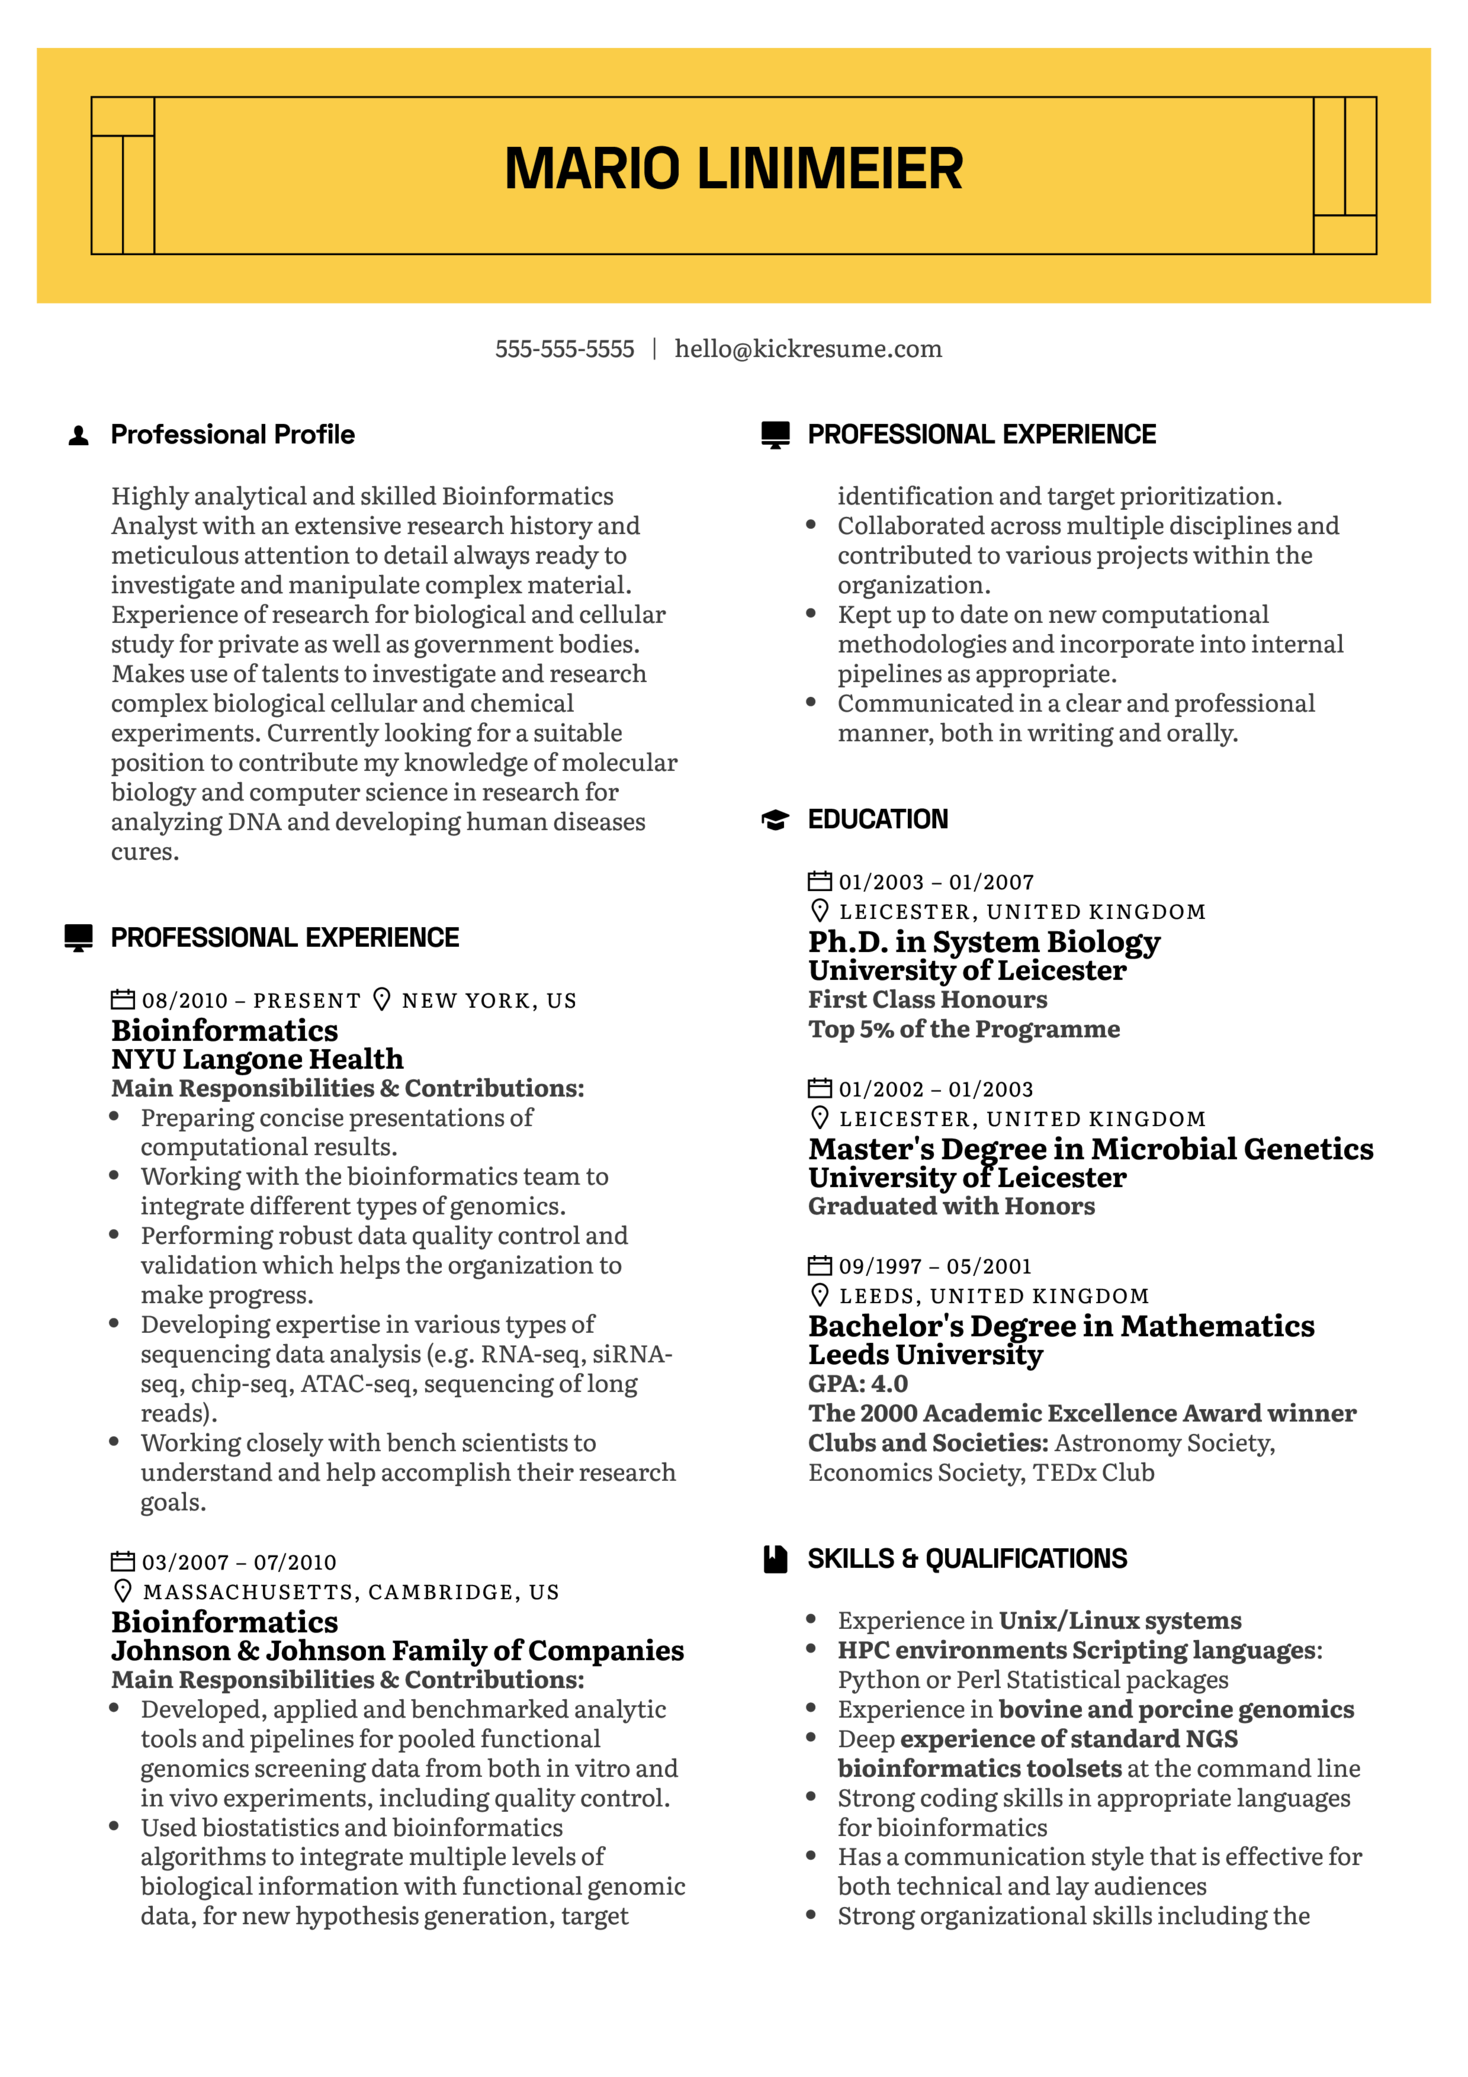 image Objectives On Bioinformatics Scientist Resume on